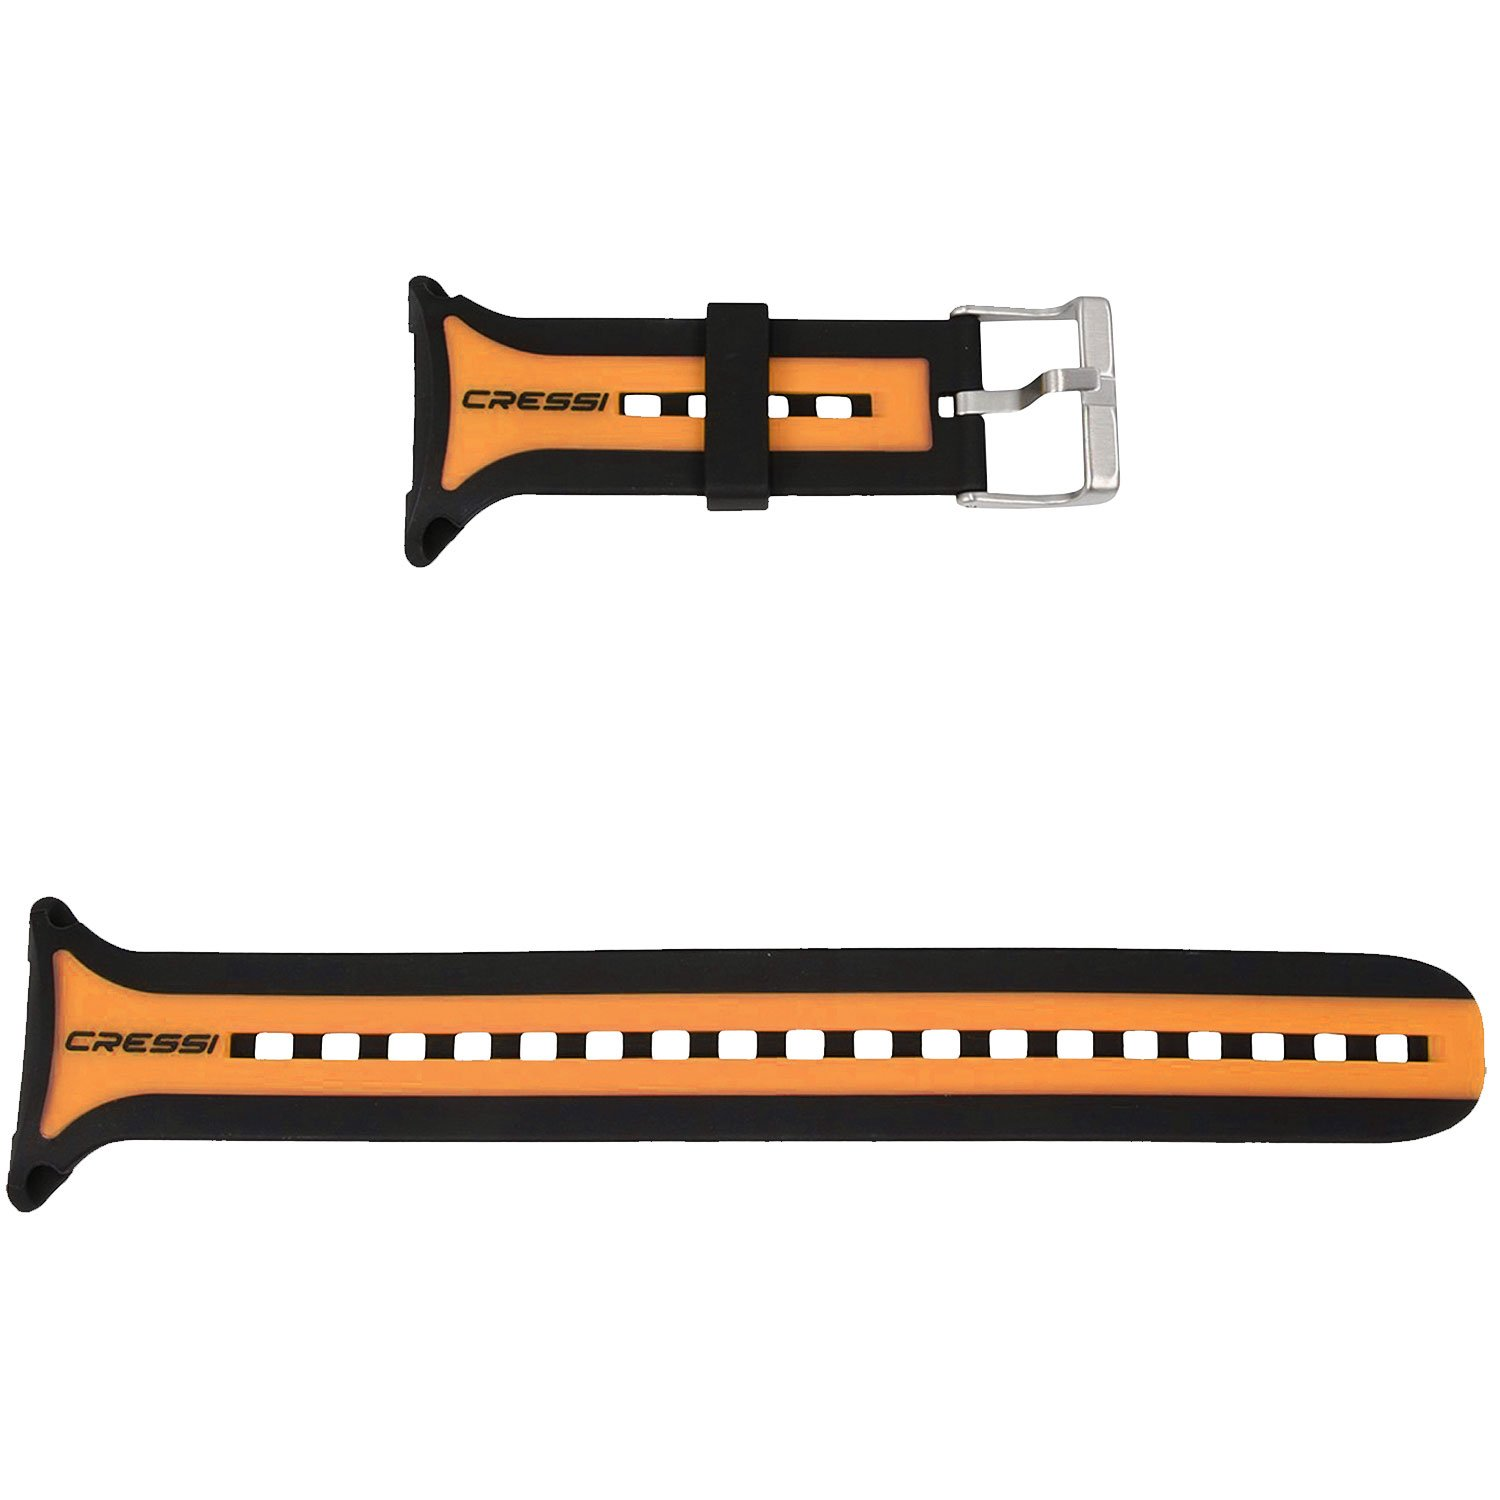 Cressi Watchband for Leonardo, Black/Orange